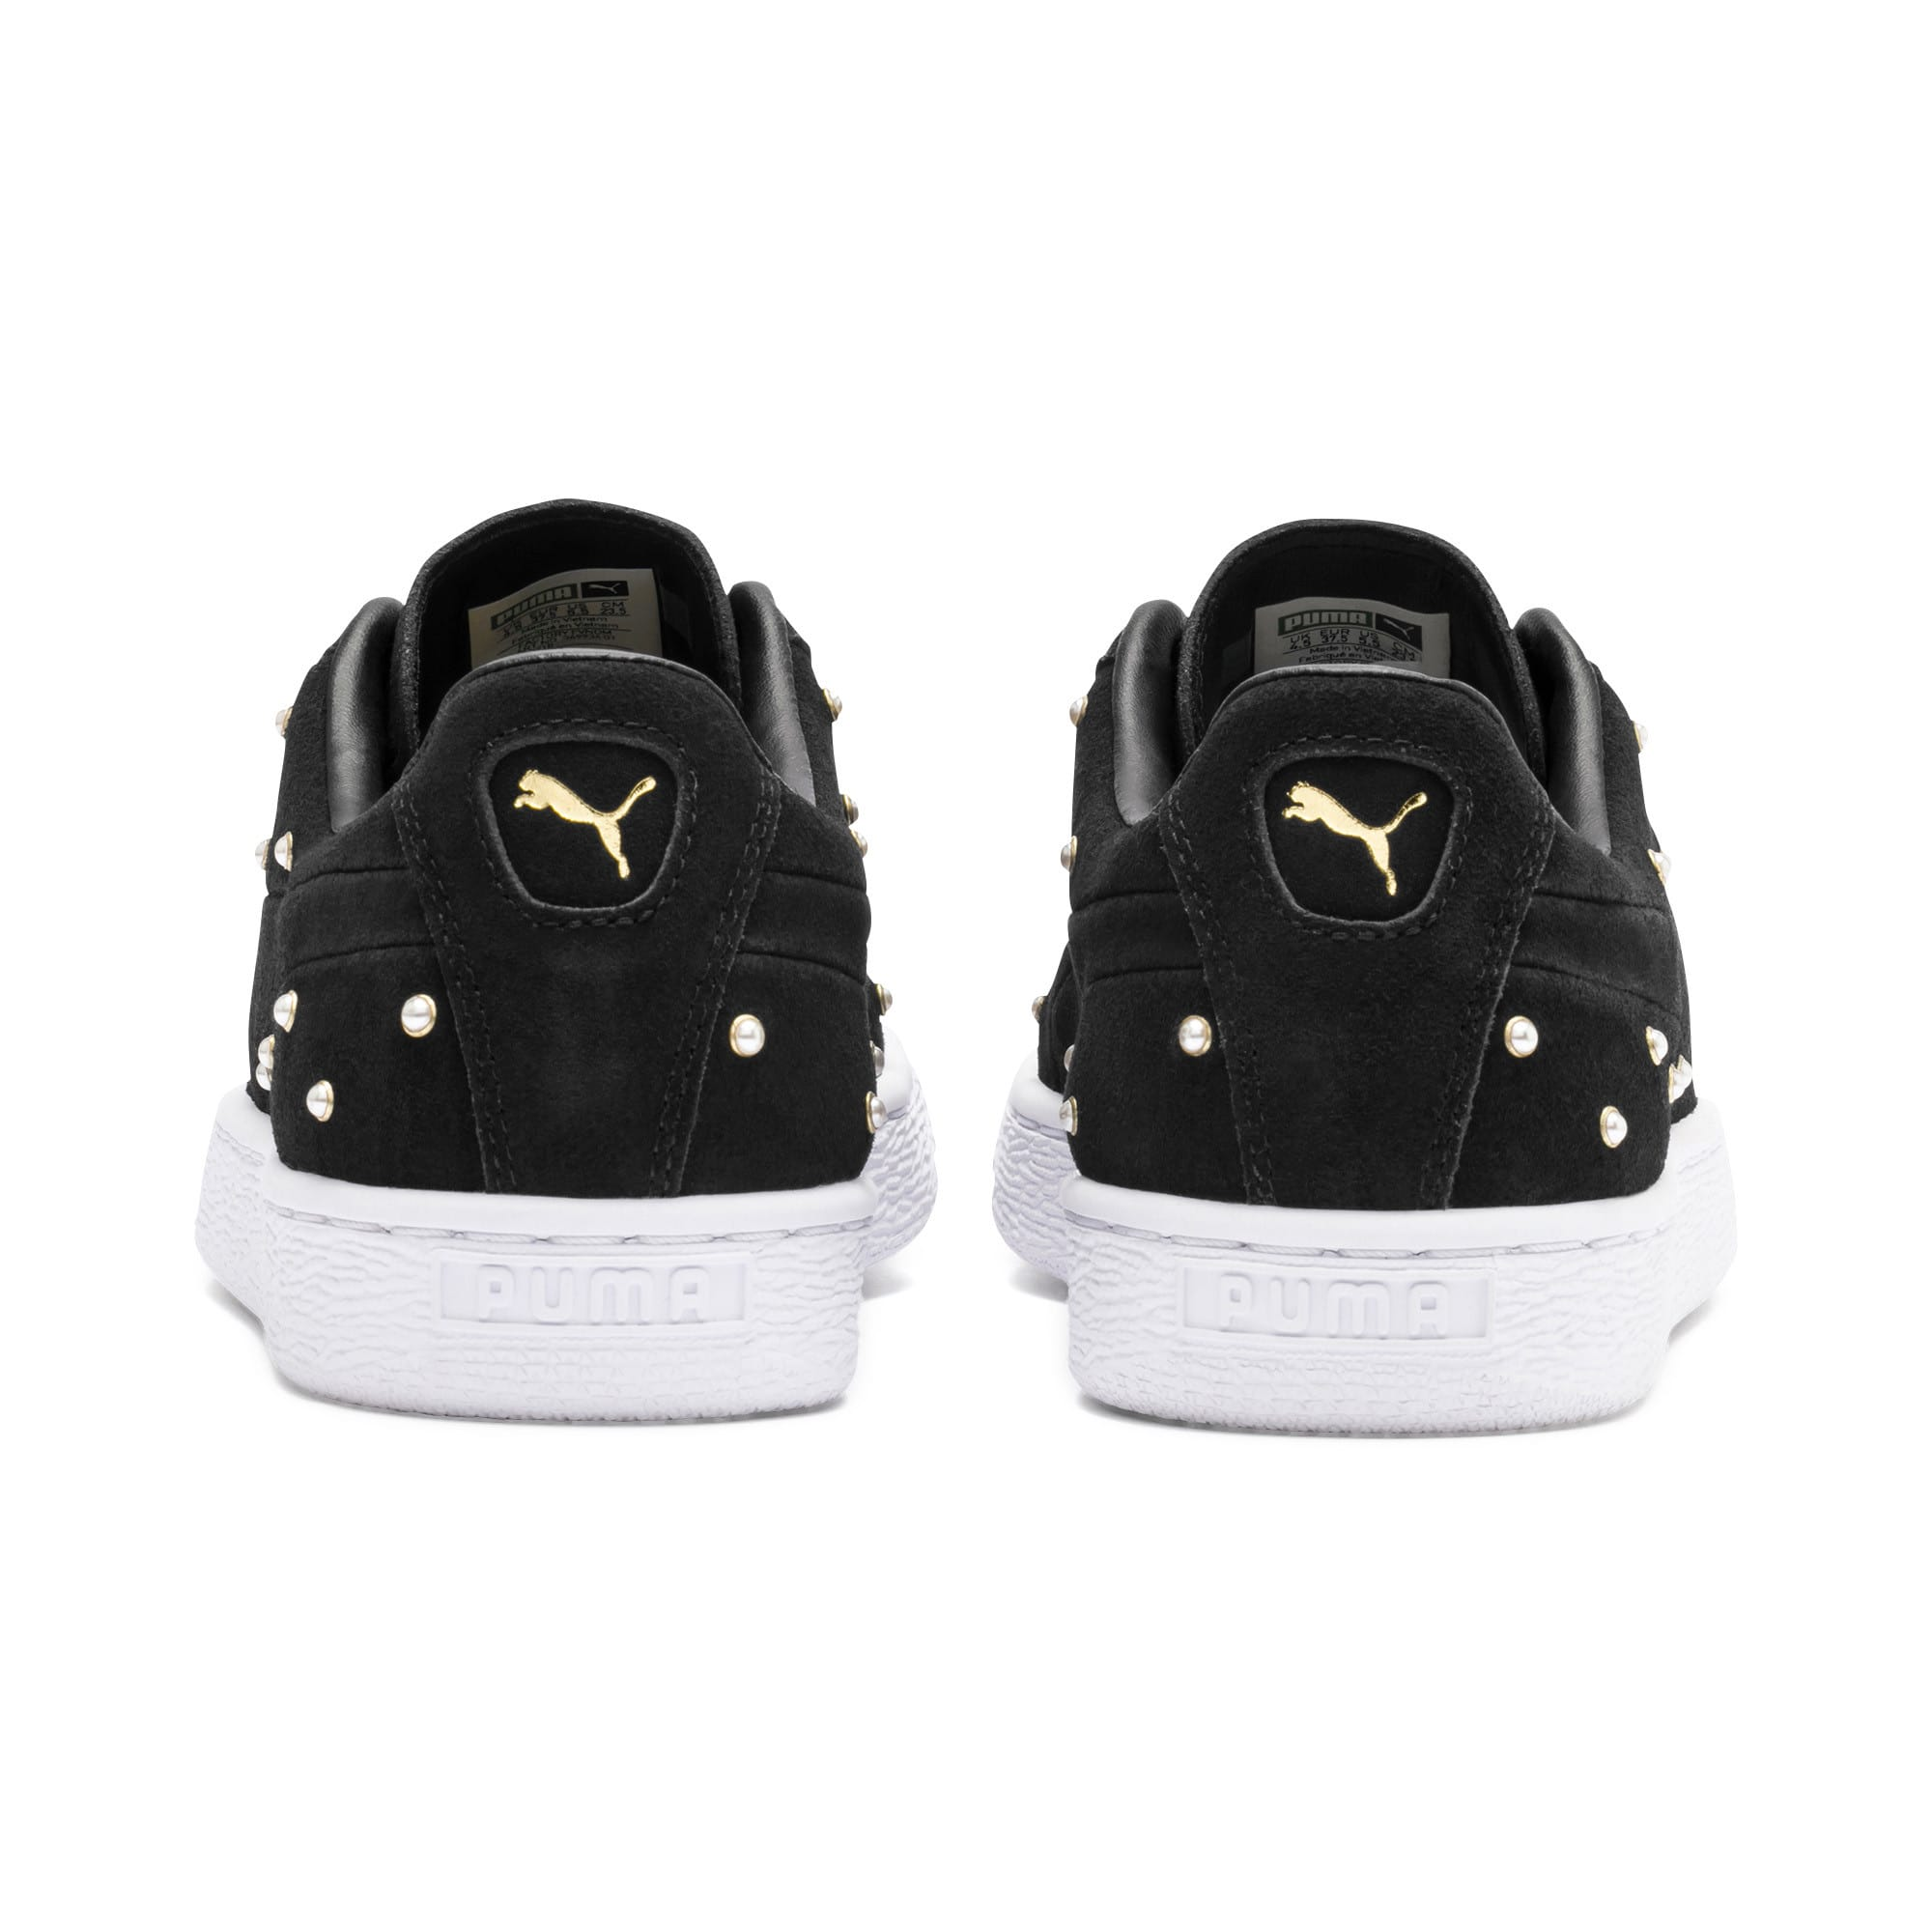 Thumbnail 4 of Suede Pearl Studs Women's Sneakers, Puma Black-Puma Team Gold, medium